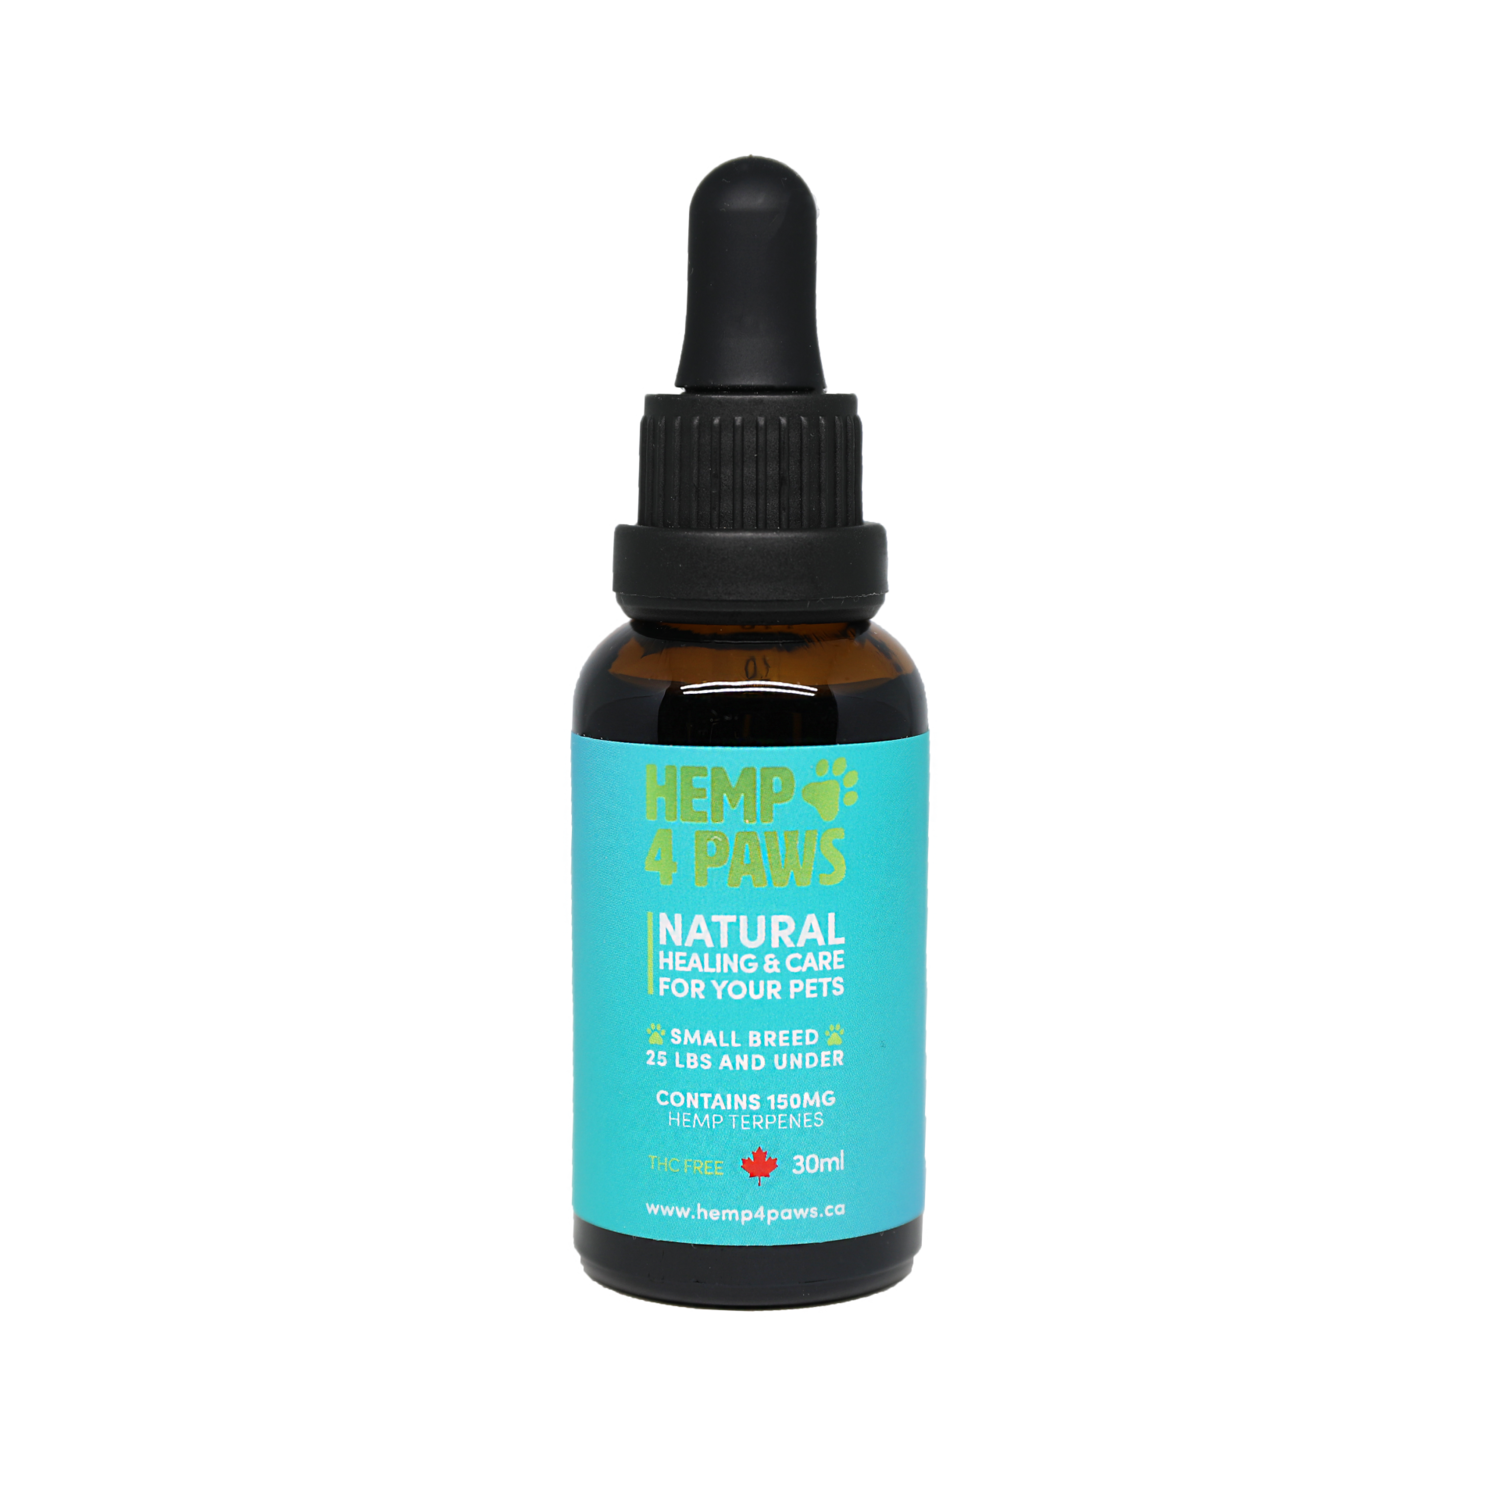 HEMP 4 PAWS HEMP OIL FOR SMALL BREEDS 30ml